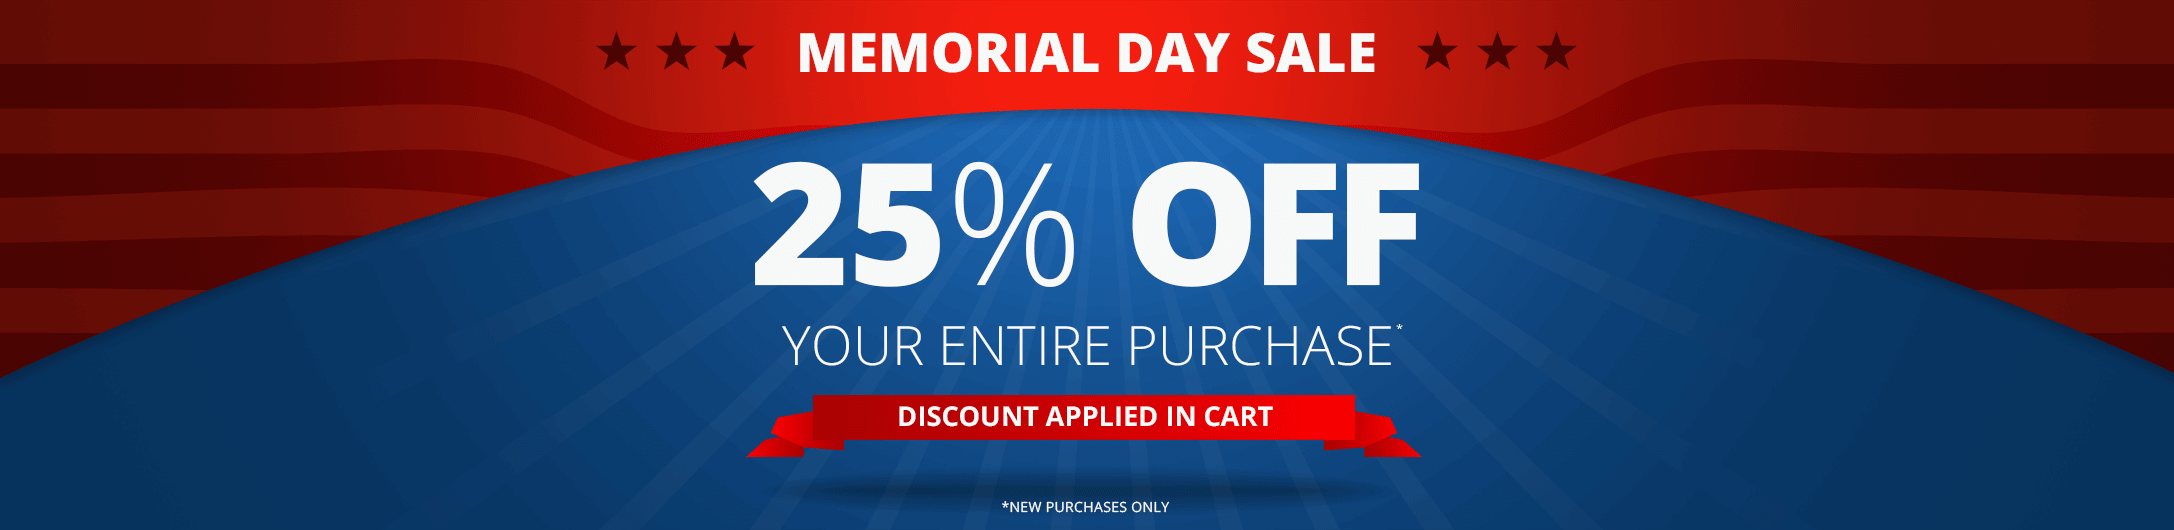 25% Off Memorial Day Sale